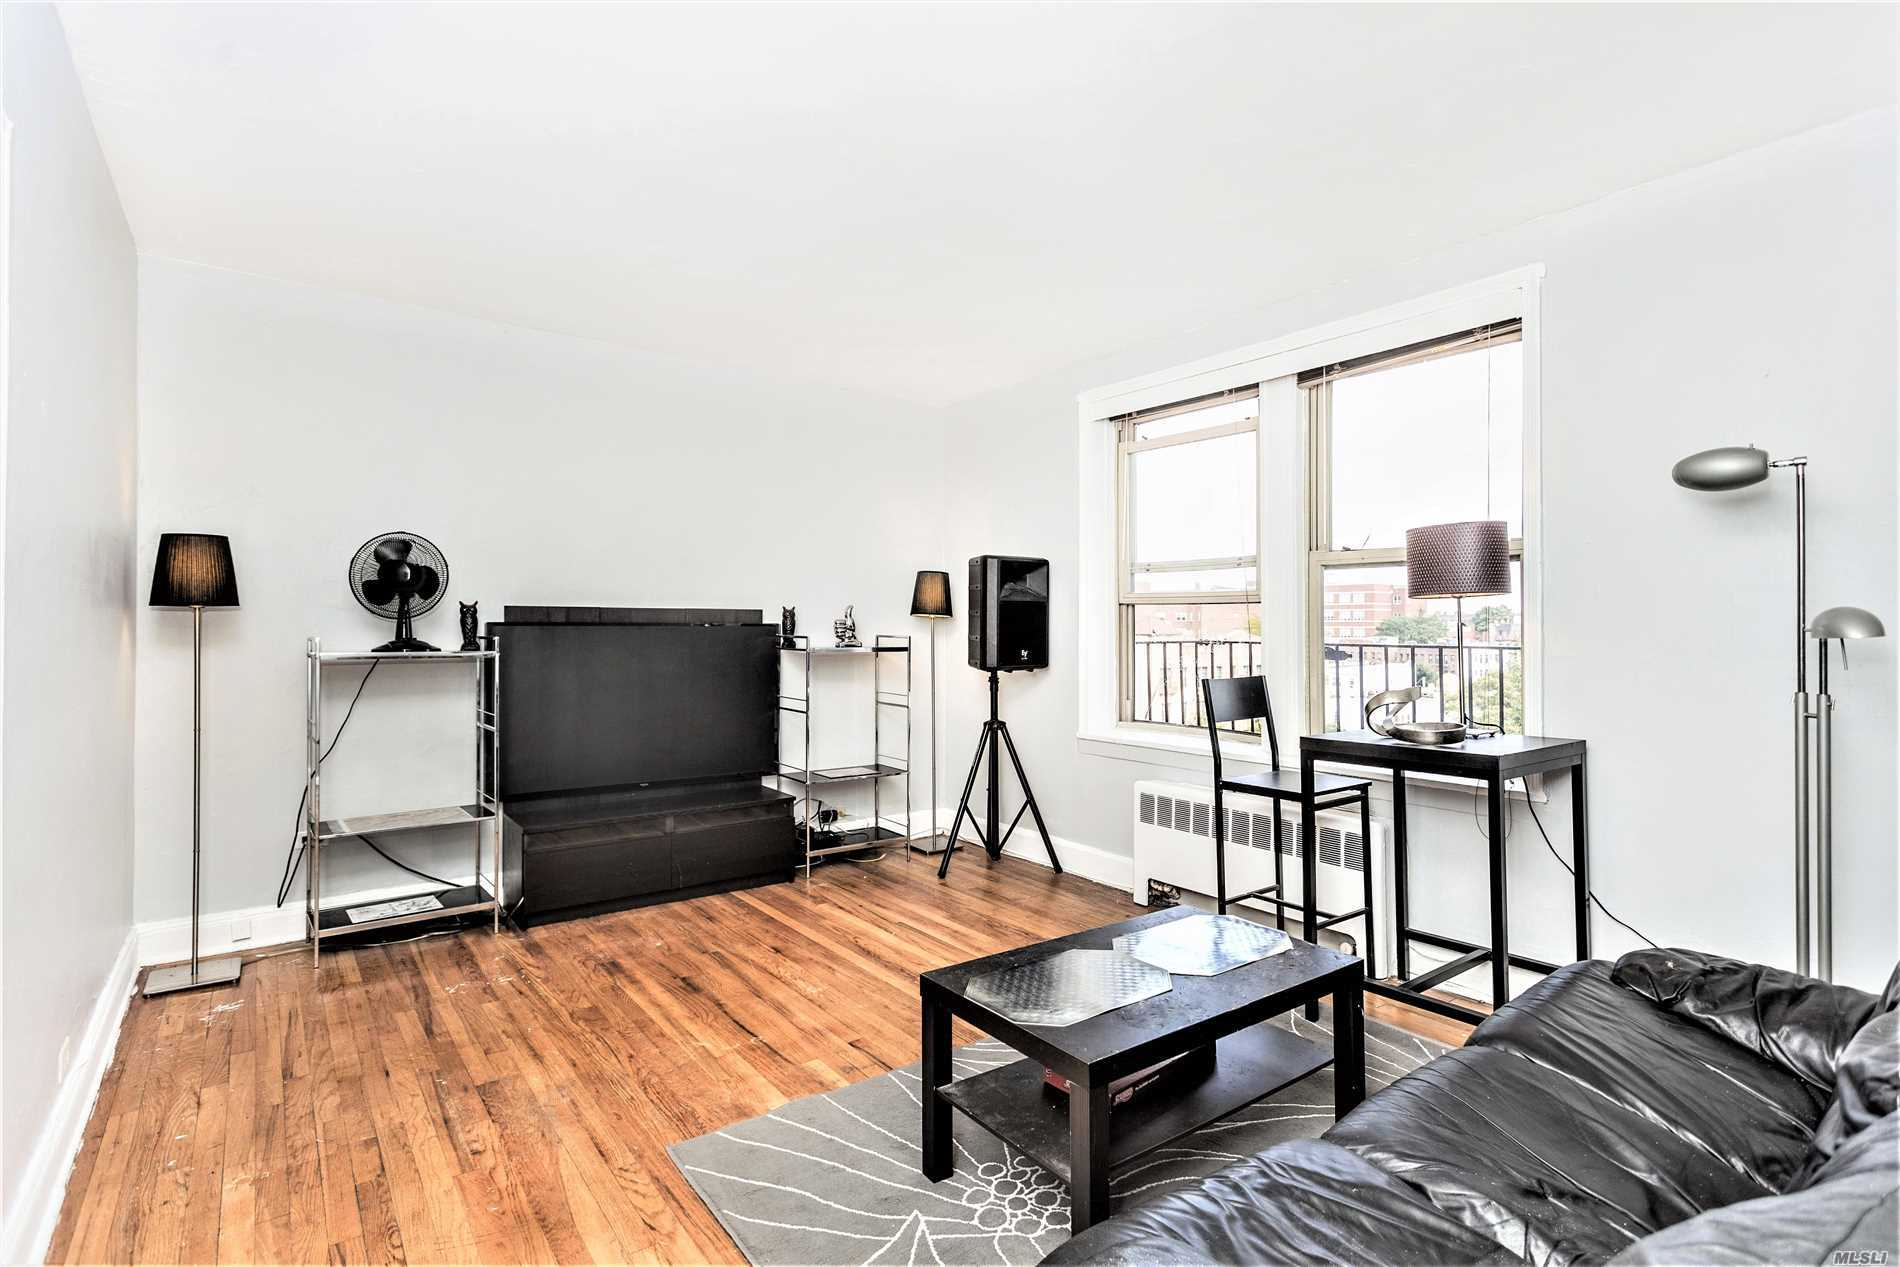 Currently The Lowest Priced 1 Bedroom In Celtic Park, This Is A Great Opportunity For The Right Buyer To Renovate The Kitchen And Bathroom With Their Own Style!  Renovated 1 Beds Sell For 375K+. It's The Largest Pet Friendly Building In Western Queens Located Just 3 Blocks To The 7 Train. Elevator Building, On-Site Security, On-Site Property Management, Parking (Wait List), Storage (Wait List), Two Court Yards And Two Laundry Rooms. Maint Includes All Utilities!